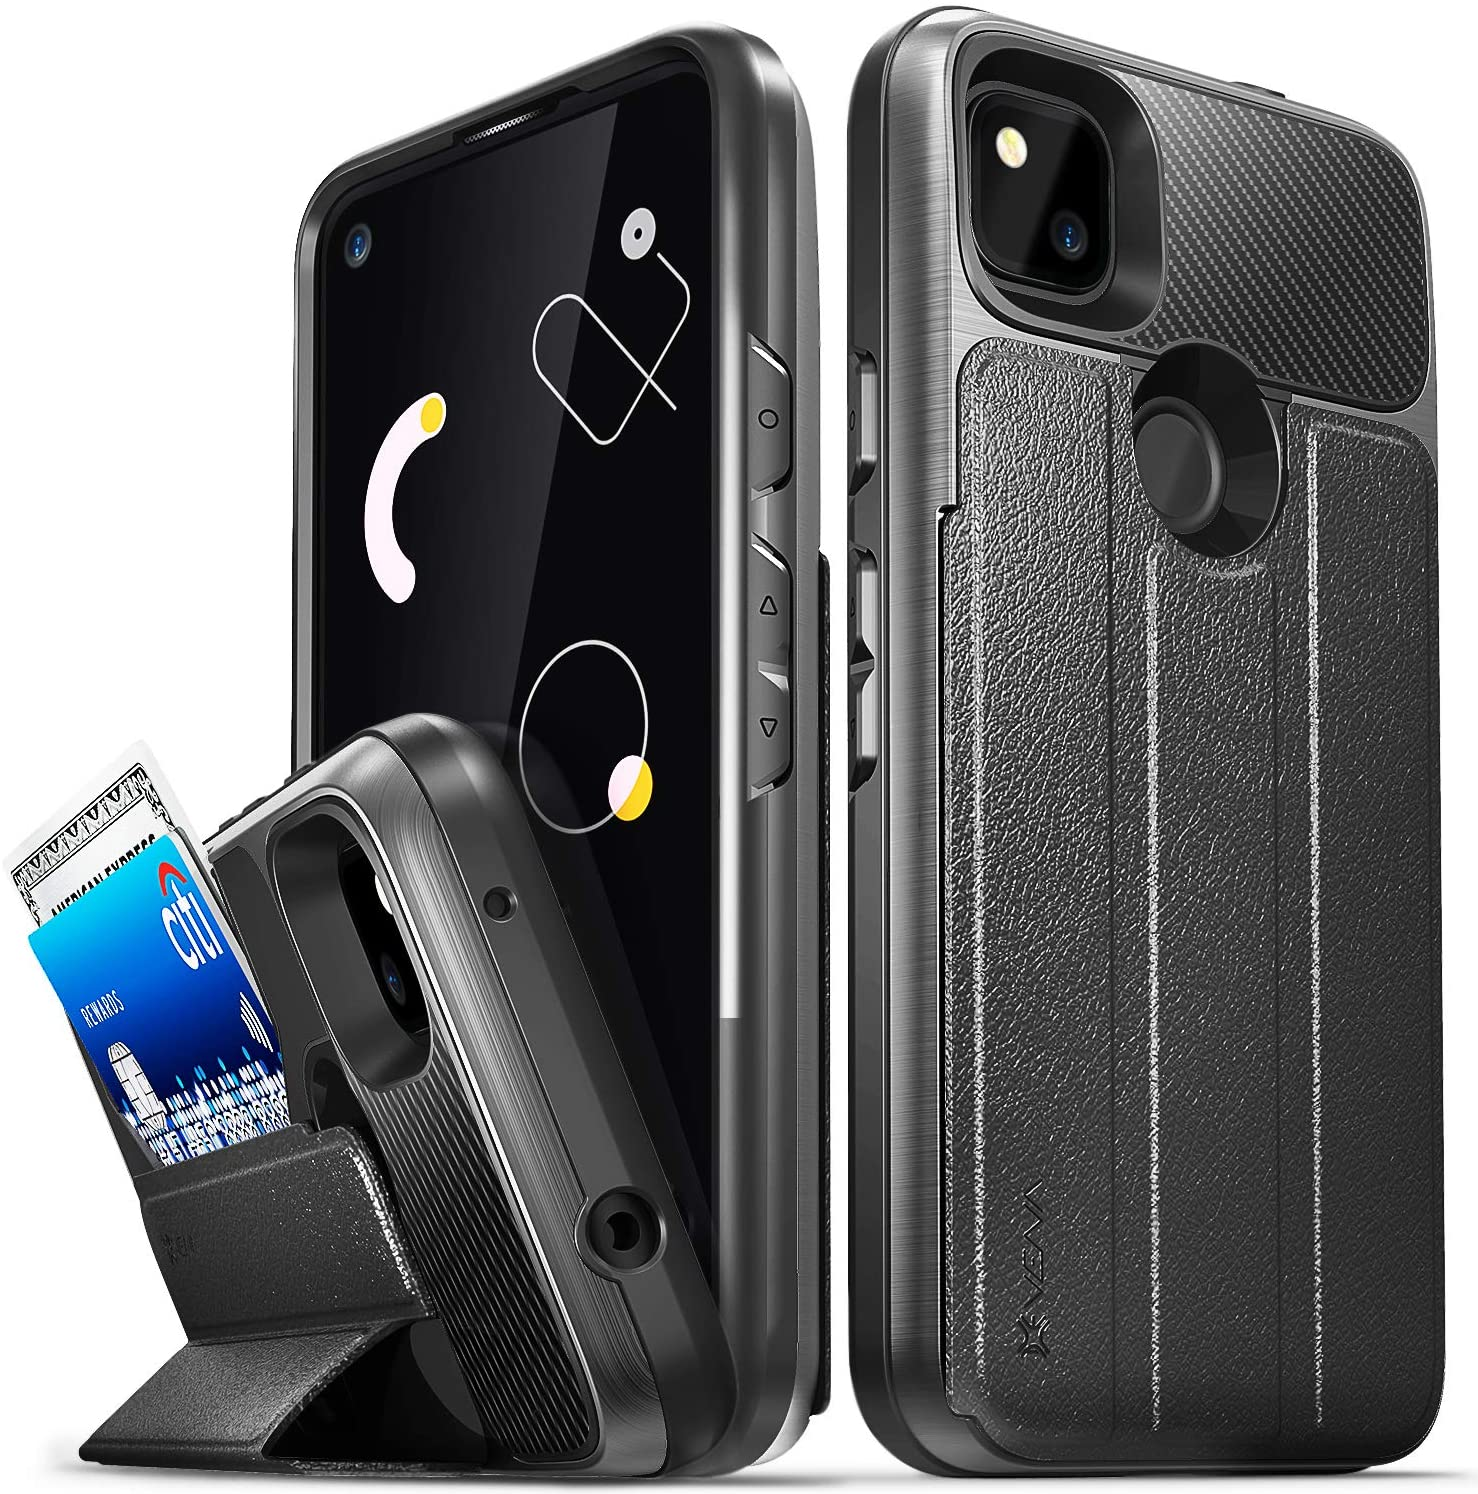 The best Google Pixel 4a cases and covers